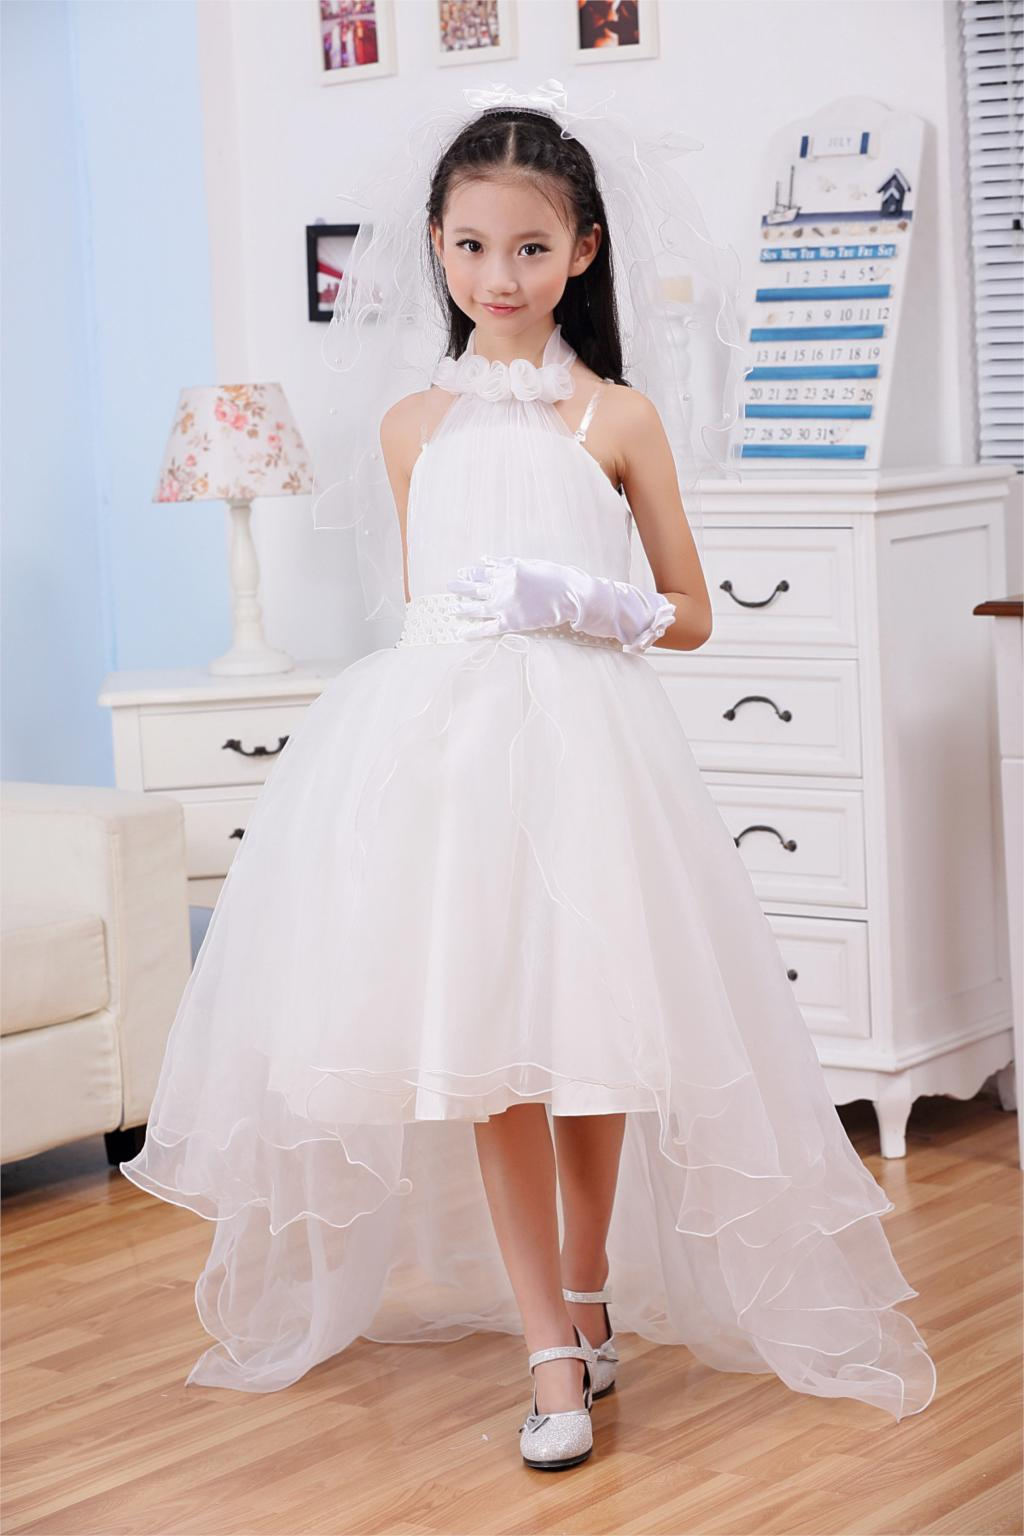 13 Year Old Dresses